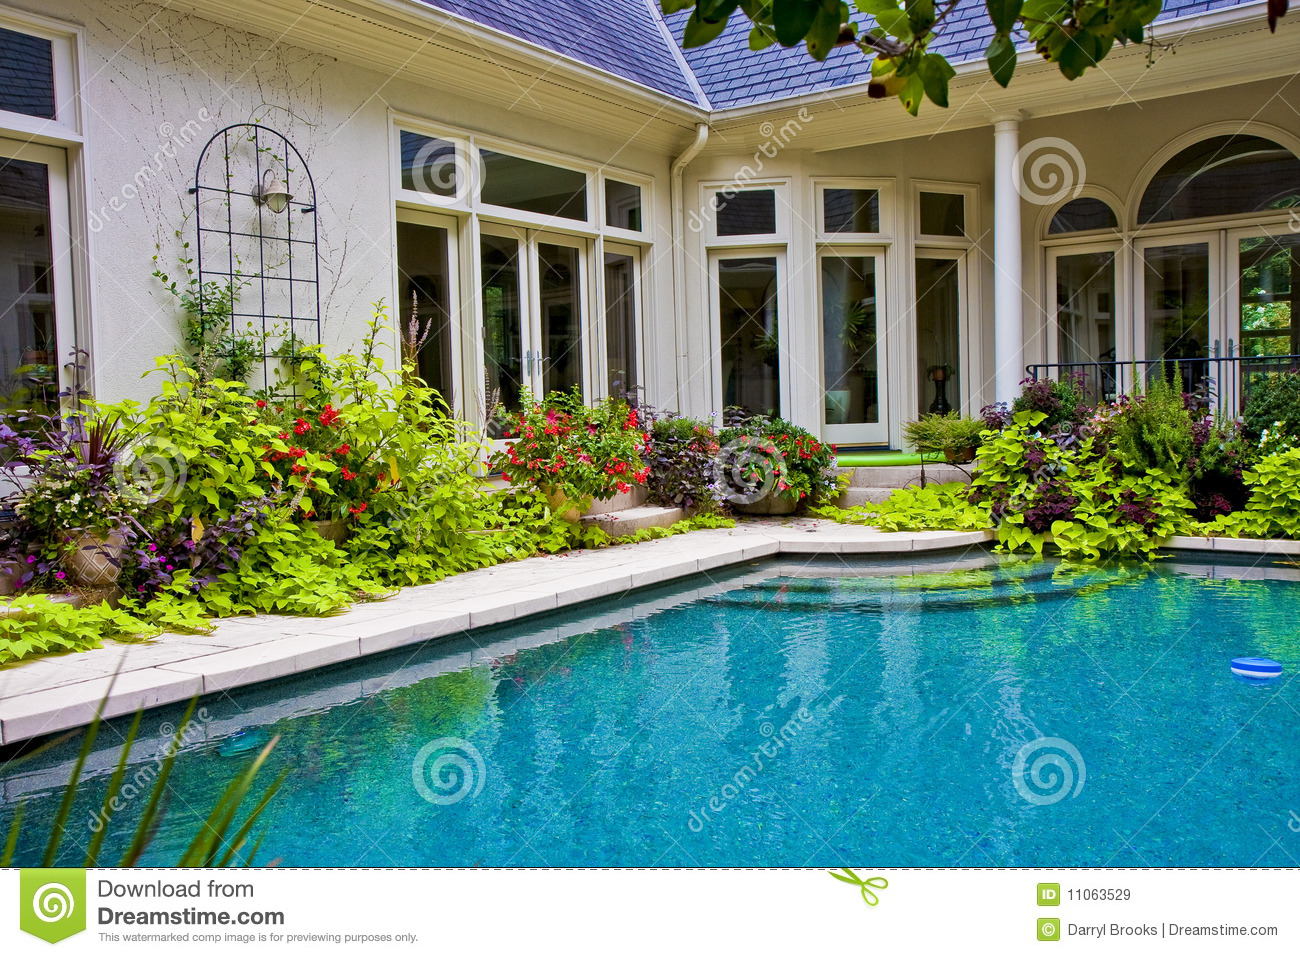 Garden around pool royalty free stock images image 11063529 for Garden near pool